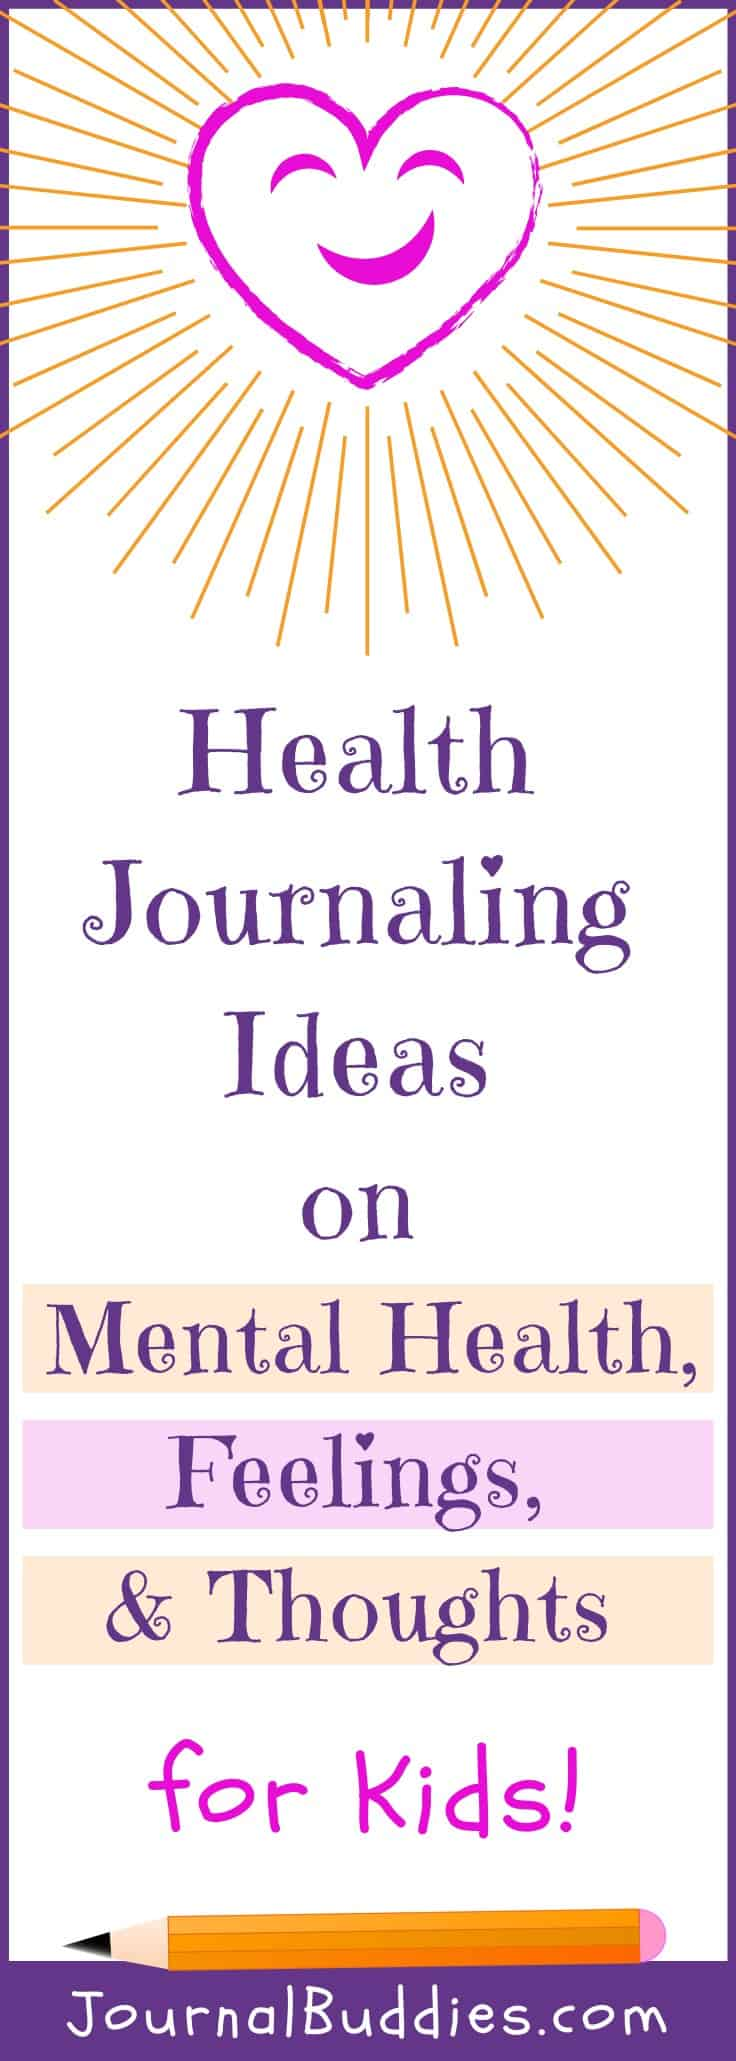 Health Journal Ideas for Kids